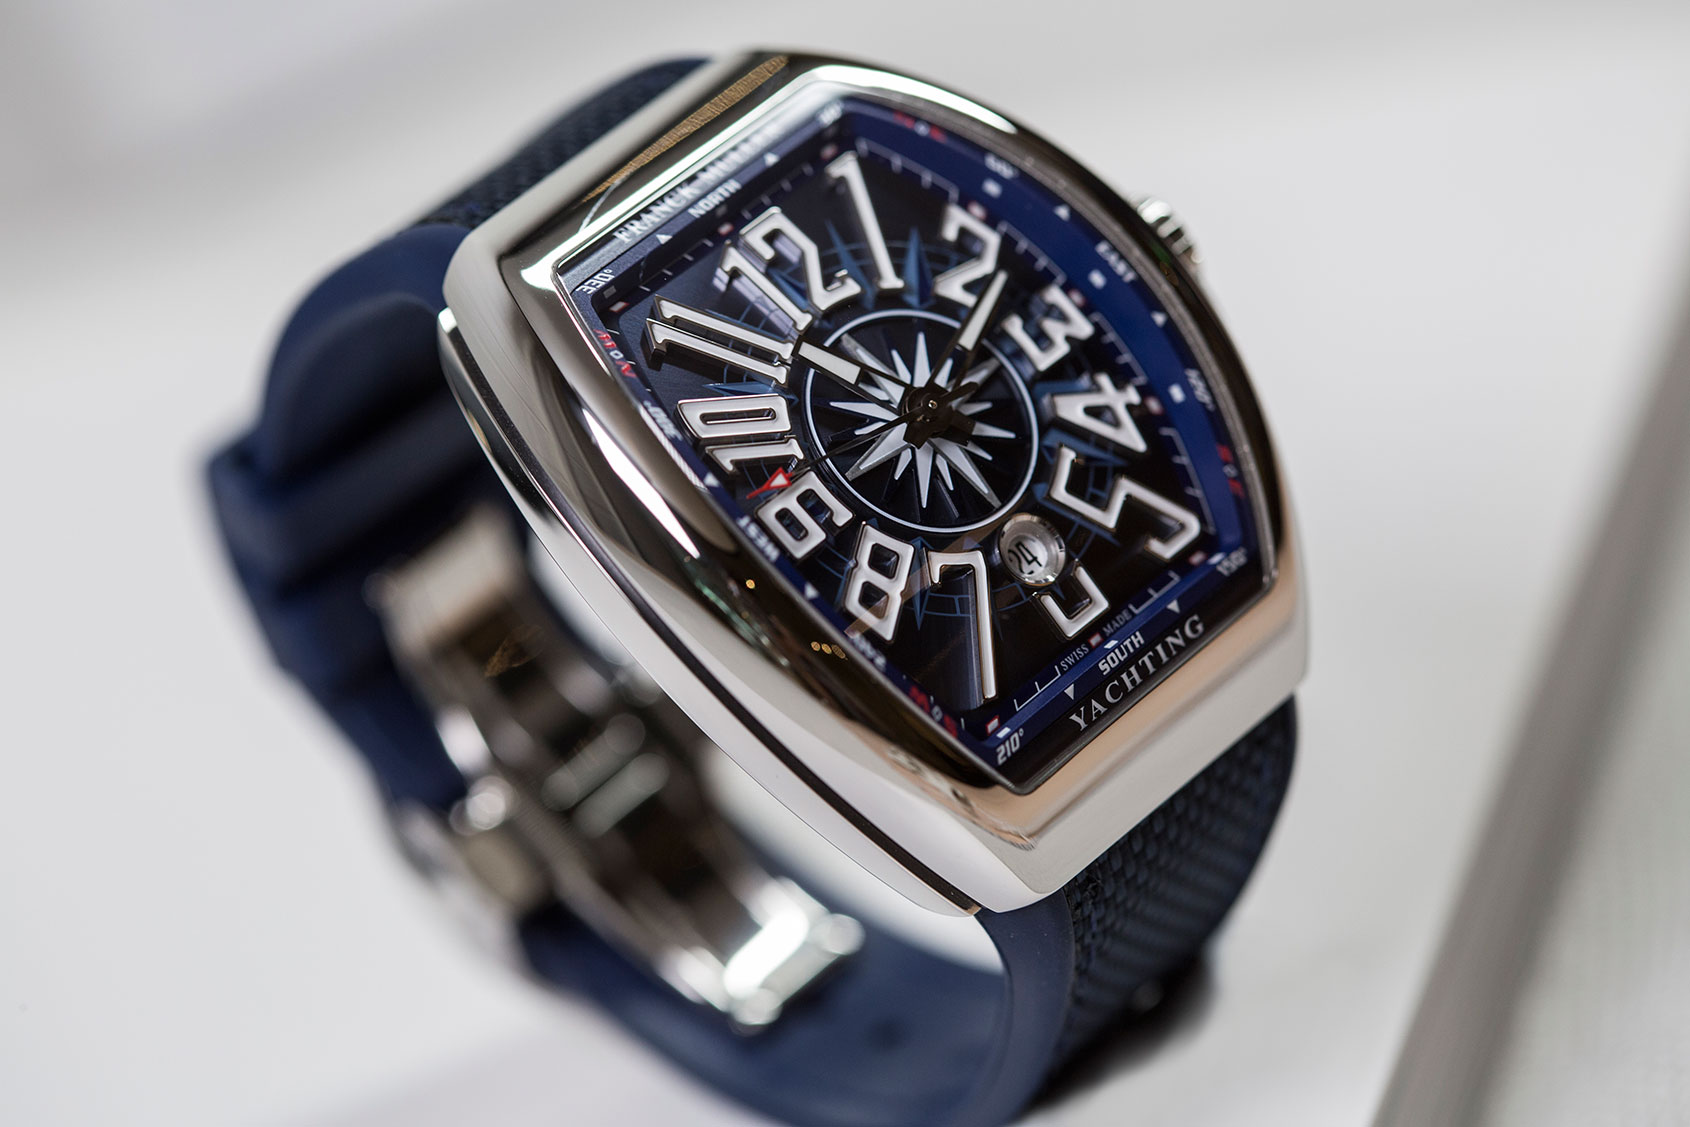 Editor 39 s pick yacht rock franck muller style time and tide watches for Franck muller watches